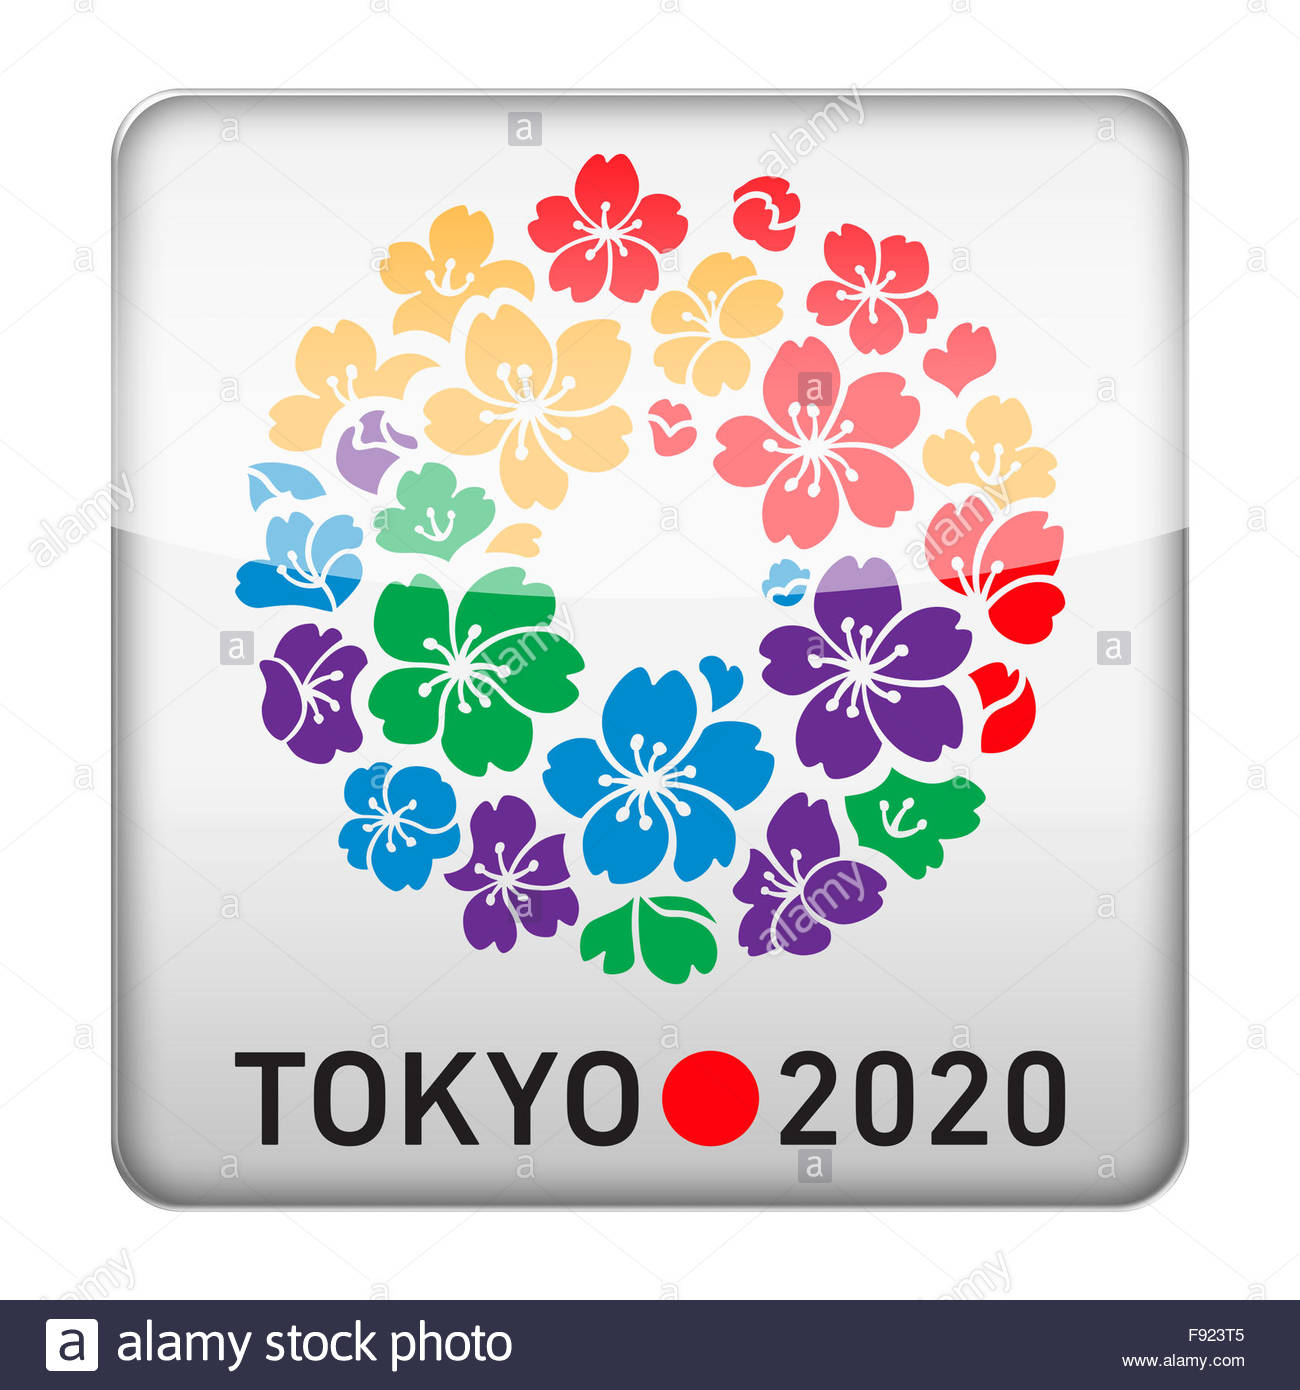 2020 Olympic Games.Tokyo 2020 Olympic Games Logo Icon Stock Photo 91630677 Alamy